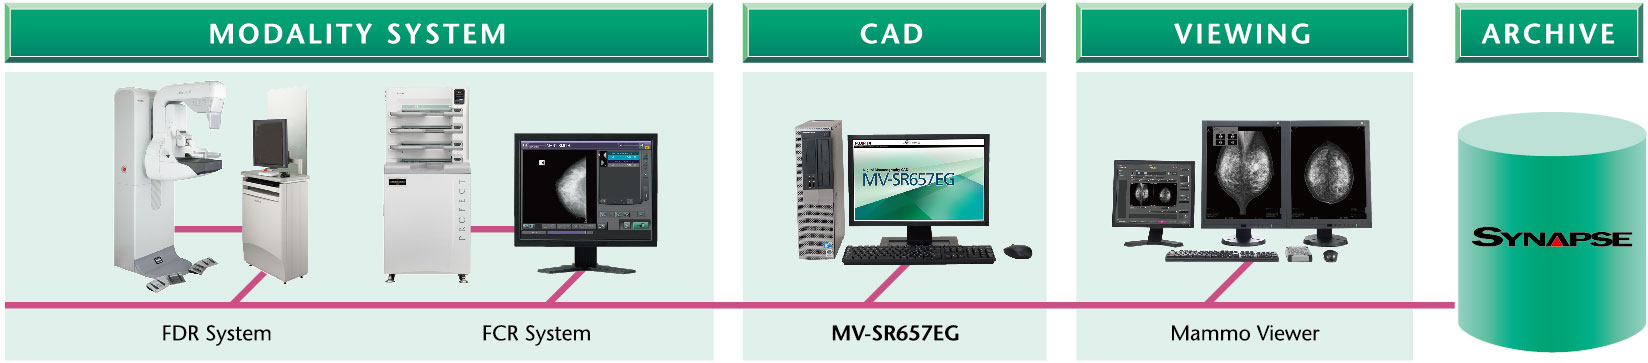 [image] Example of system configuration with modality system (FDR or FCR), CAD, Mammo Viewer, and Synapse Archive connected to each other